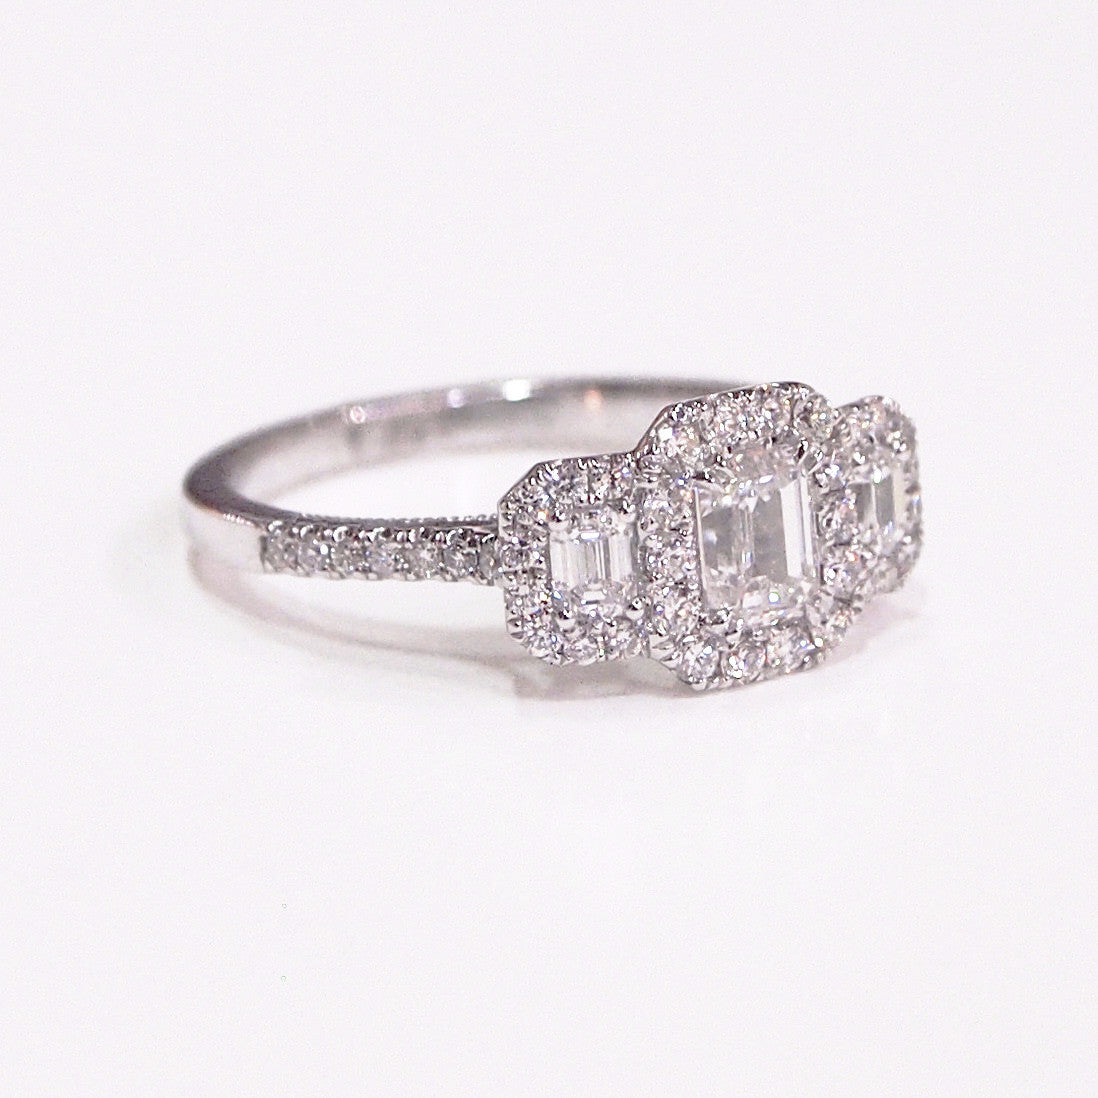 3-Stone Diamond Halo Engagement Ring